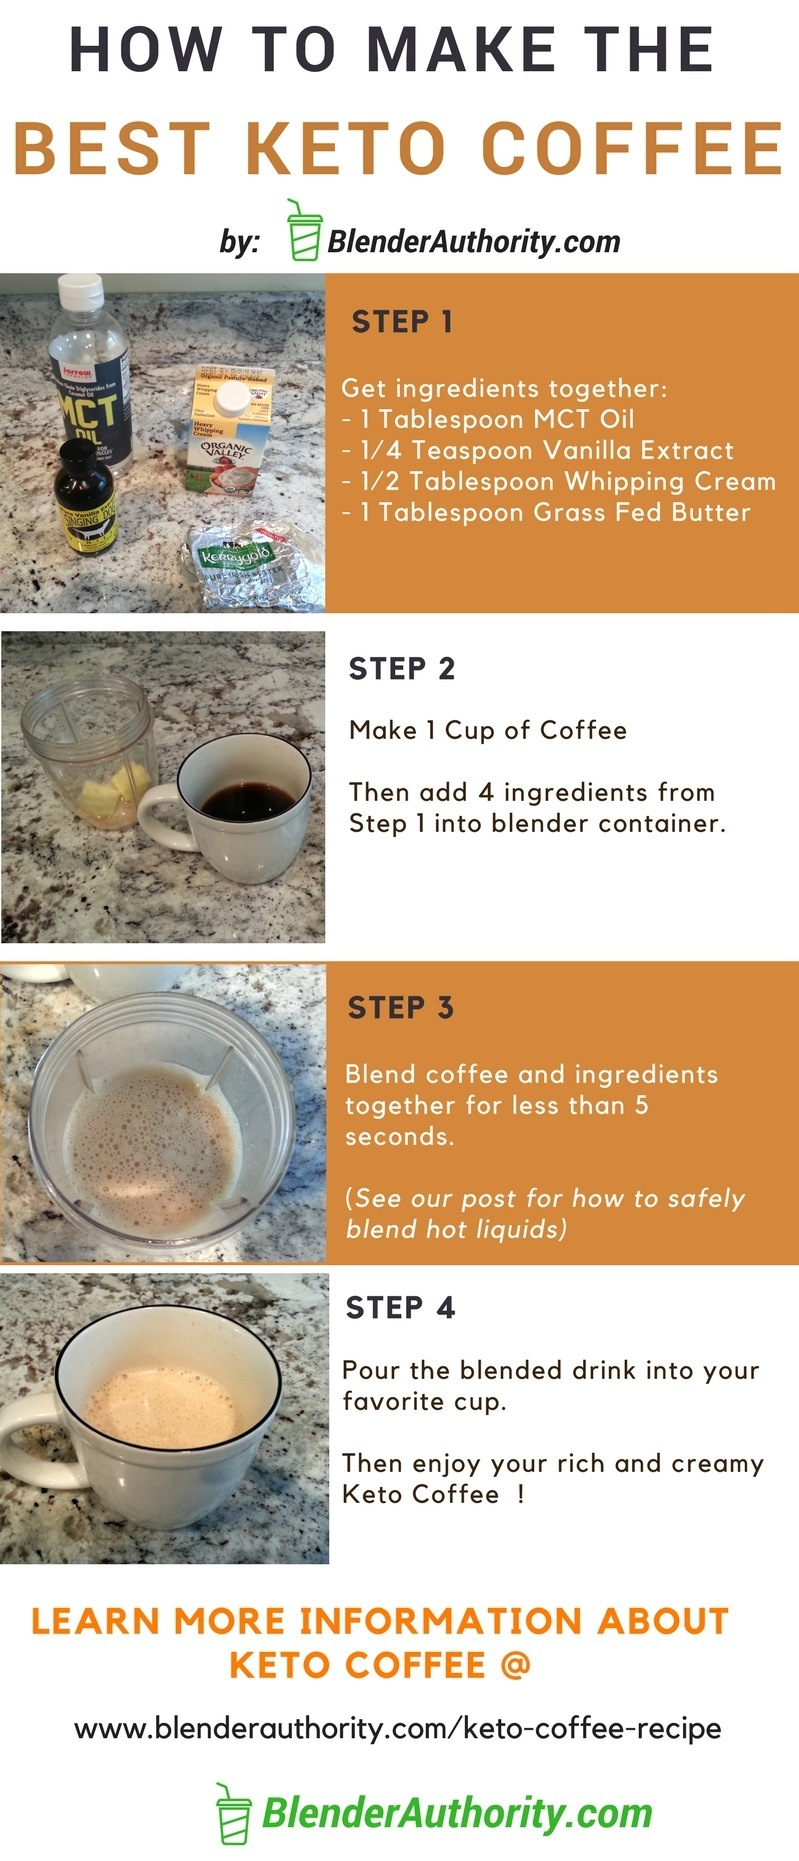 Best Keto Coffee Recipe - Step by Step How to Make Keto Coffee